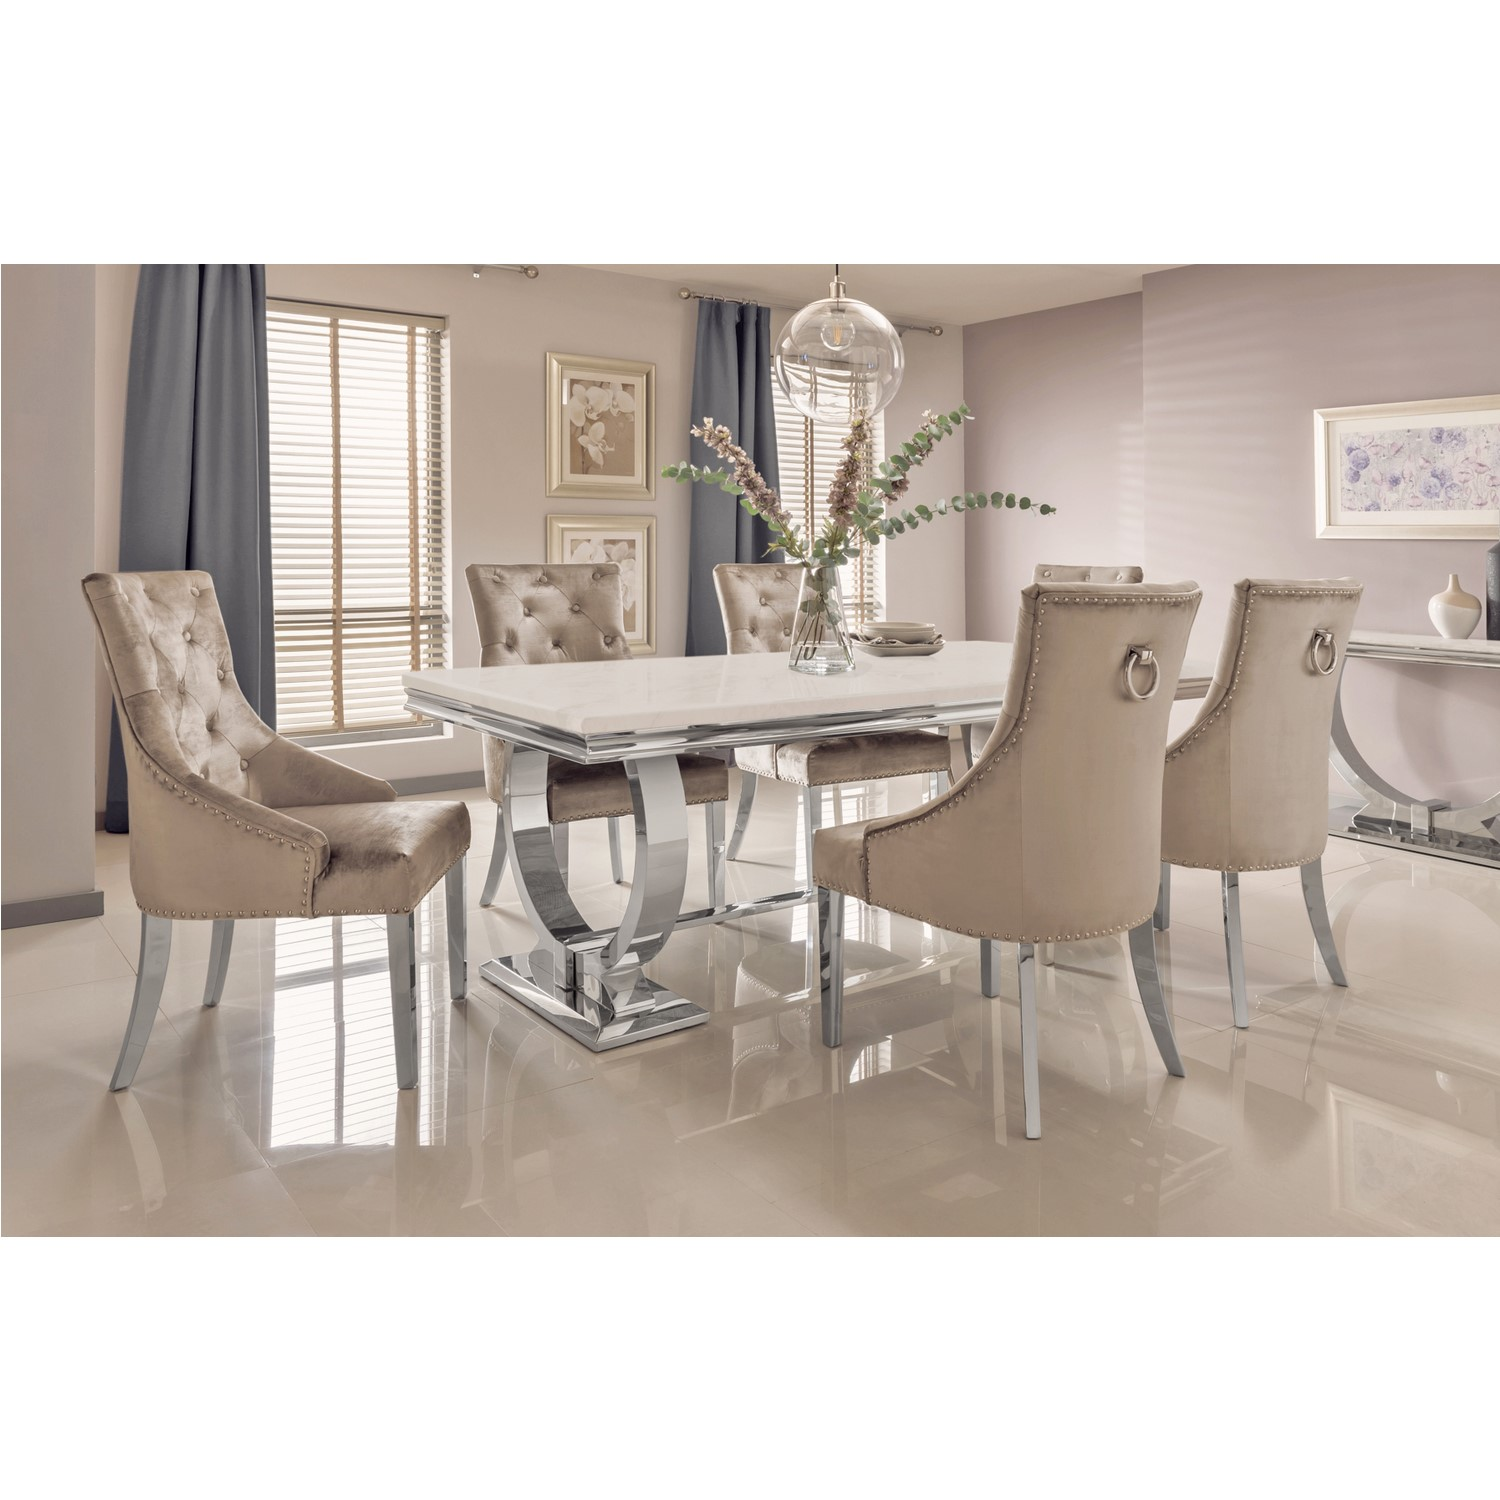 Cream Marble Dining Set with 9cm Table & Champagne Velvet Chairs   Seats  9   Arianna